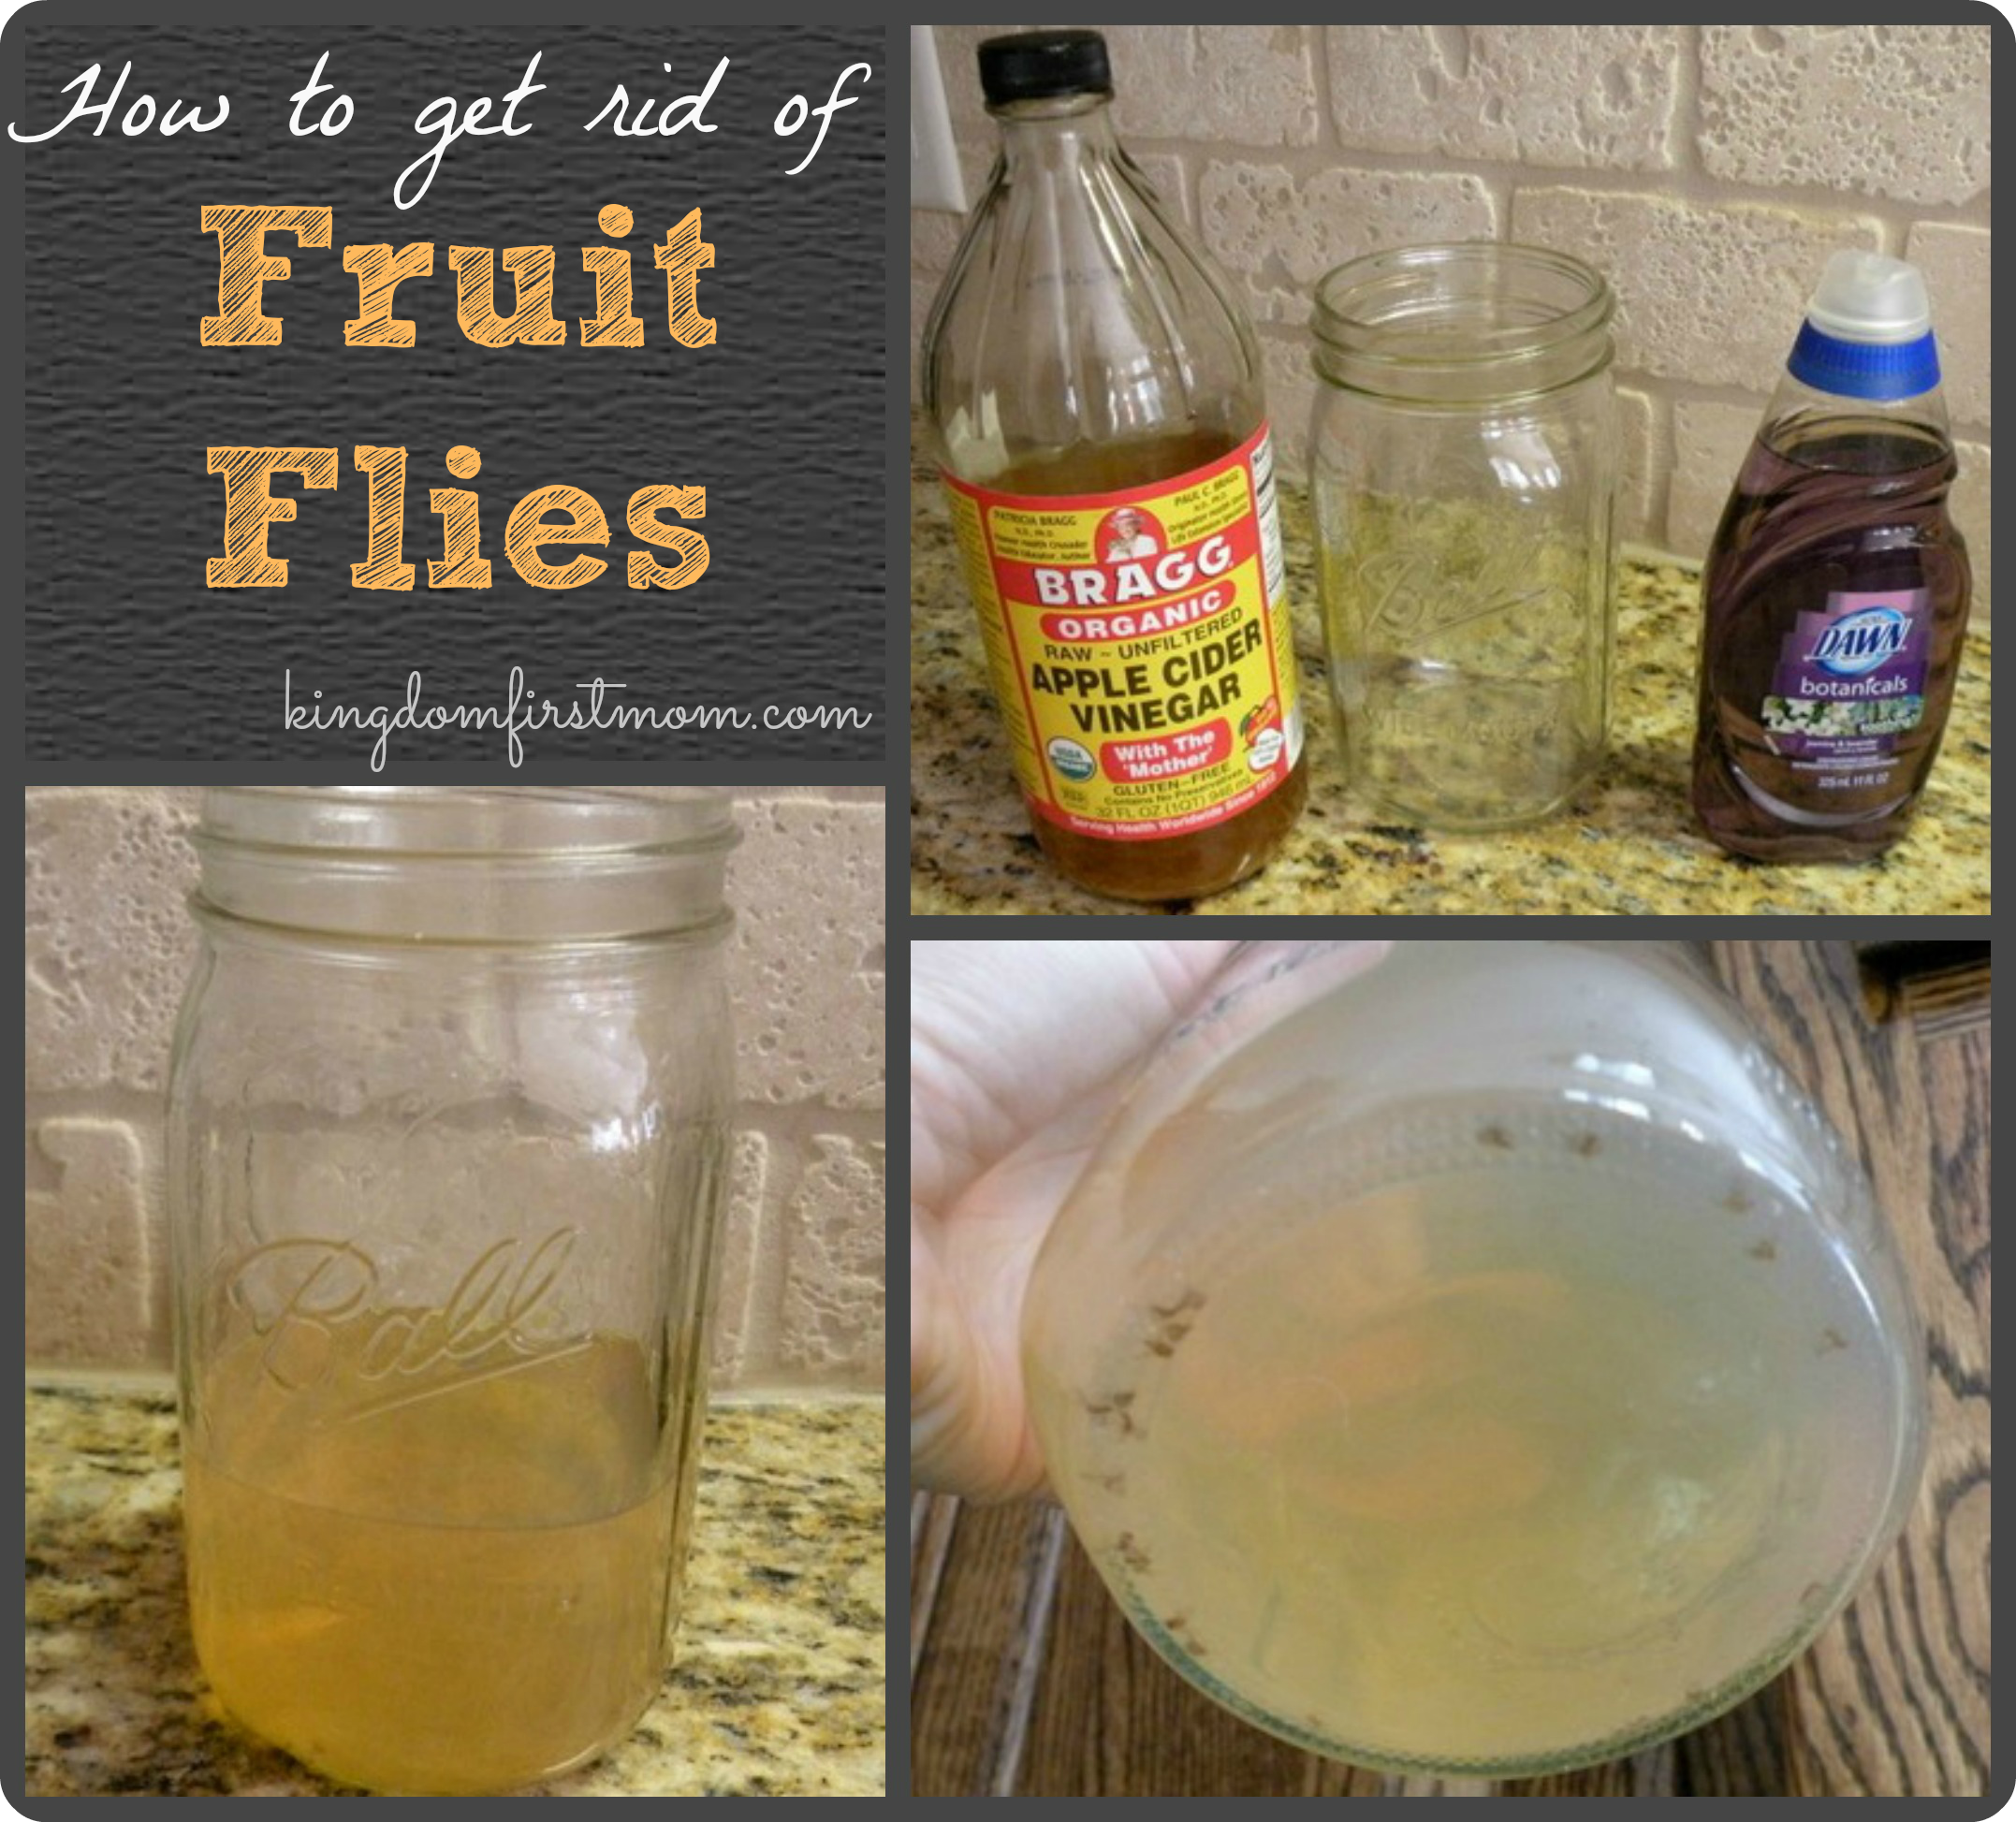 healthy fruit juices recipes how to get rid of fruit flies in house